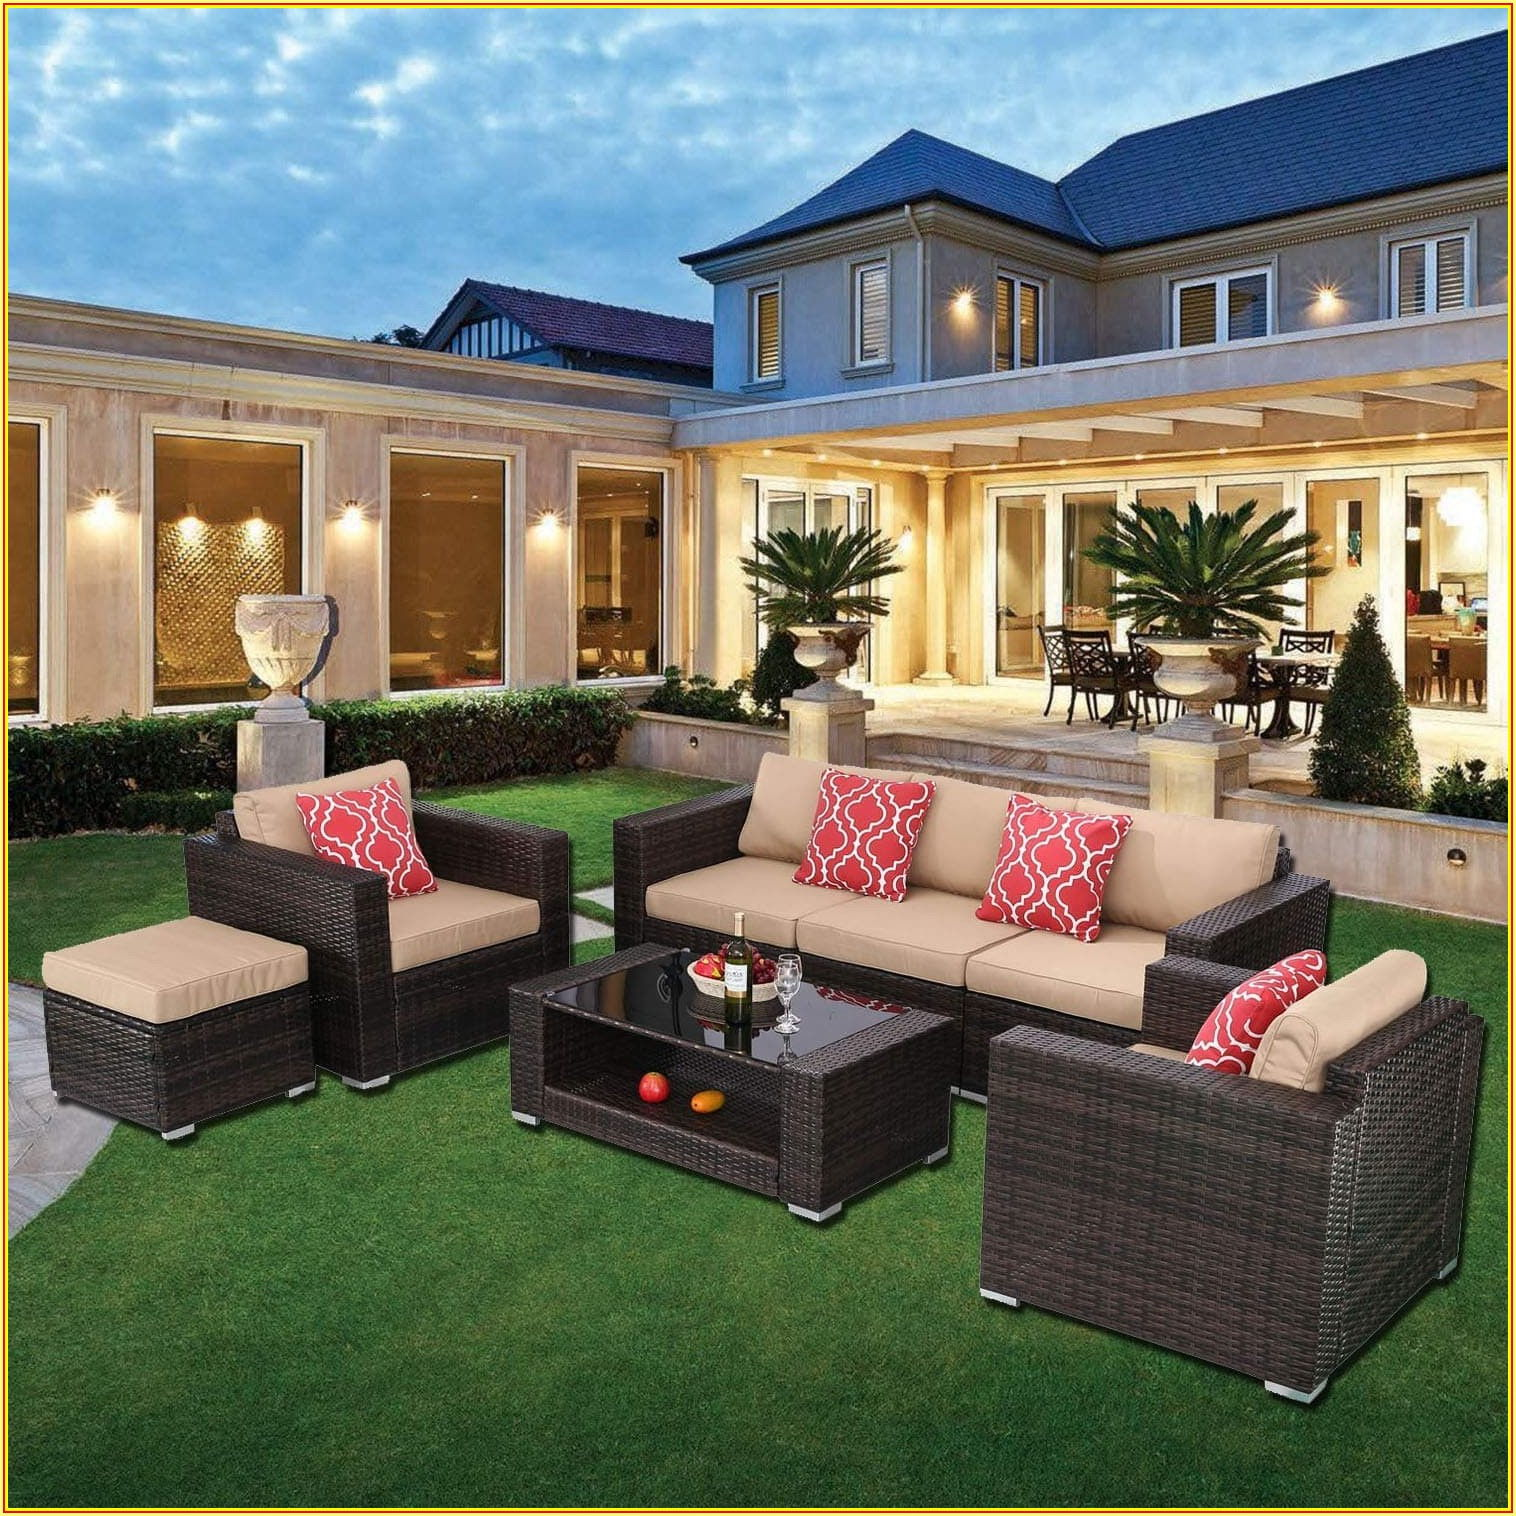 7 Piece Patio Furniture